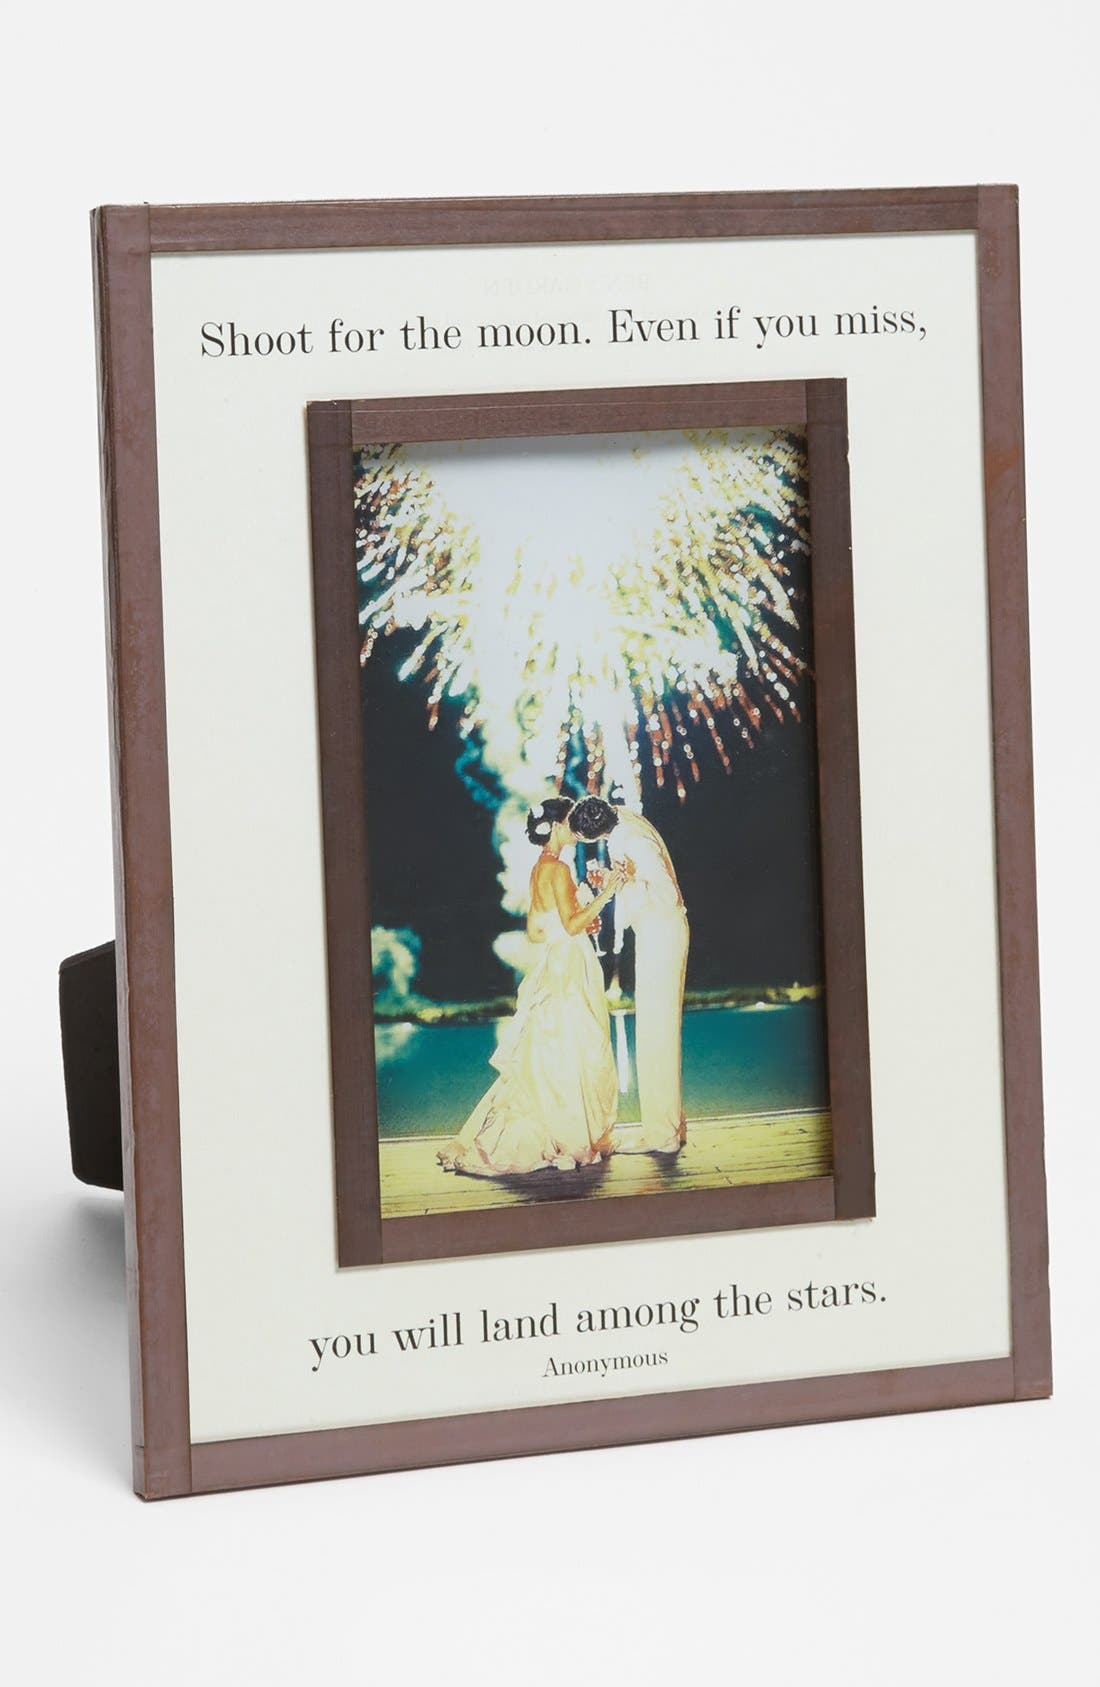 Alternate Image 1 Selected - Ben's Garden 'Shoot for the Moon' Picture Frame (4x6)